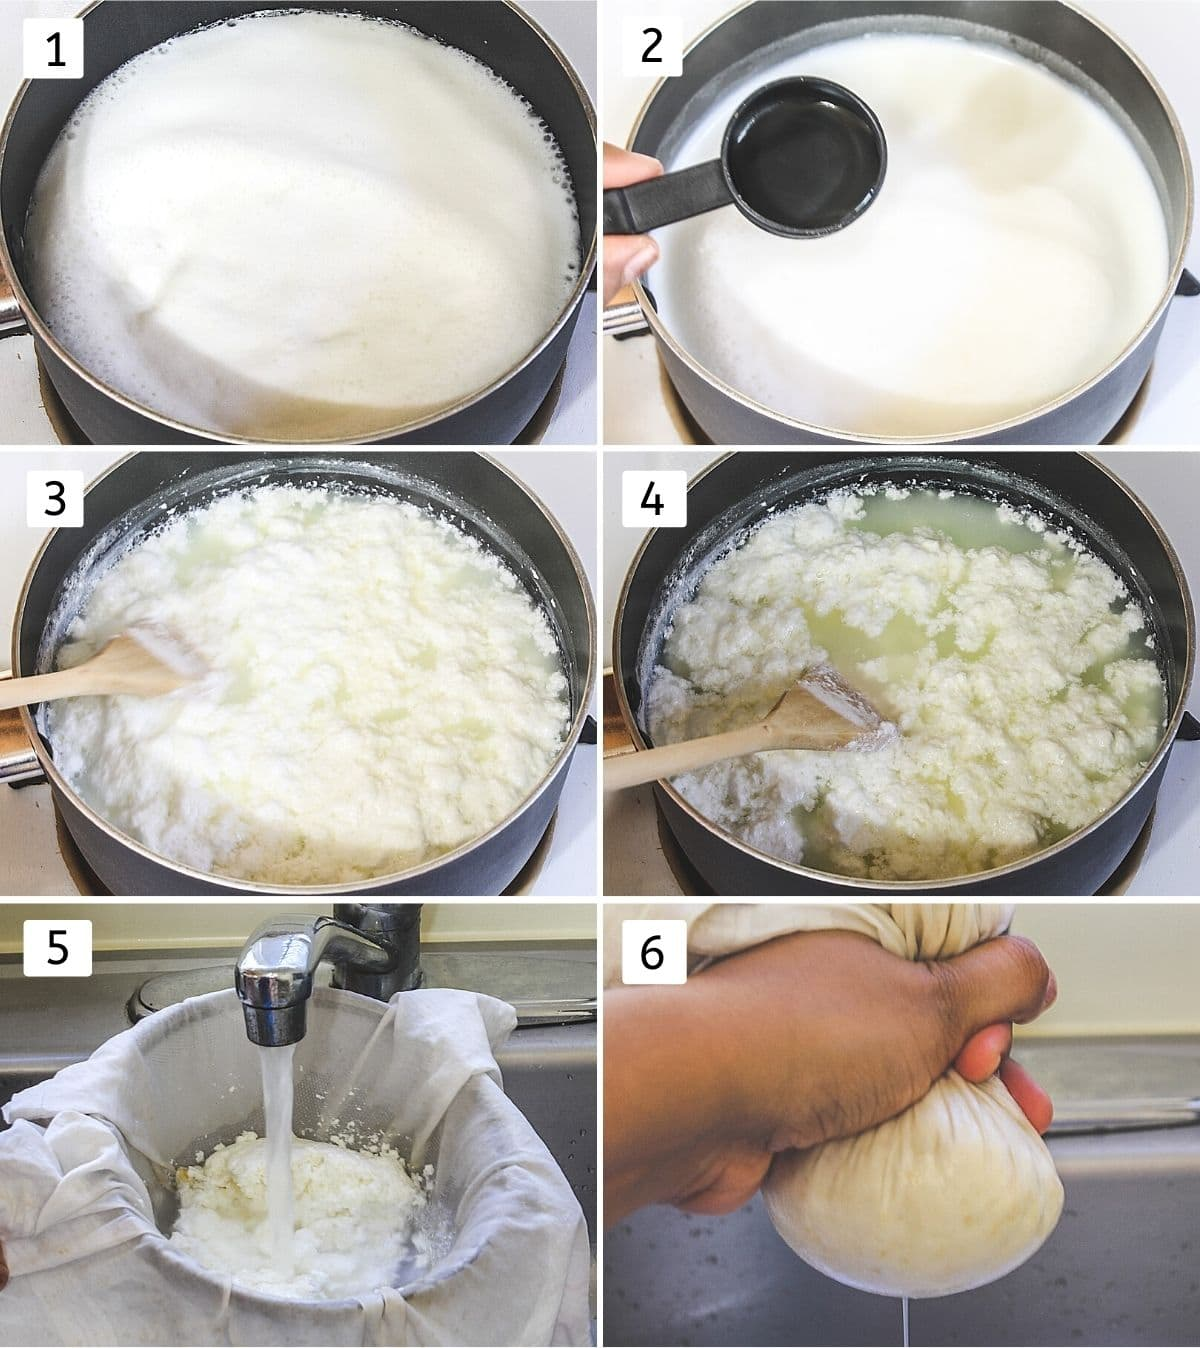 Collage of 6 images making chenna showing boiling milk, adding lemon juice, curdled milk, washing cheena, squeezing the water